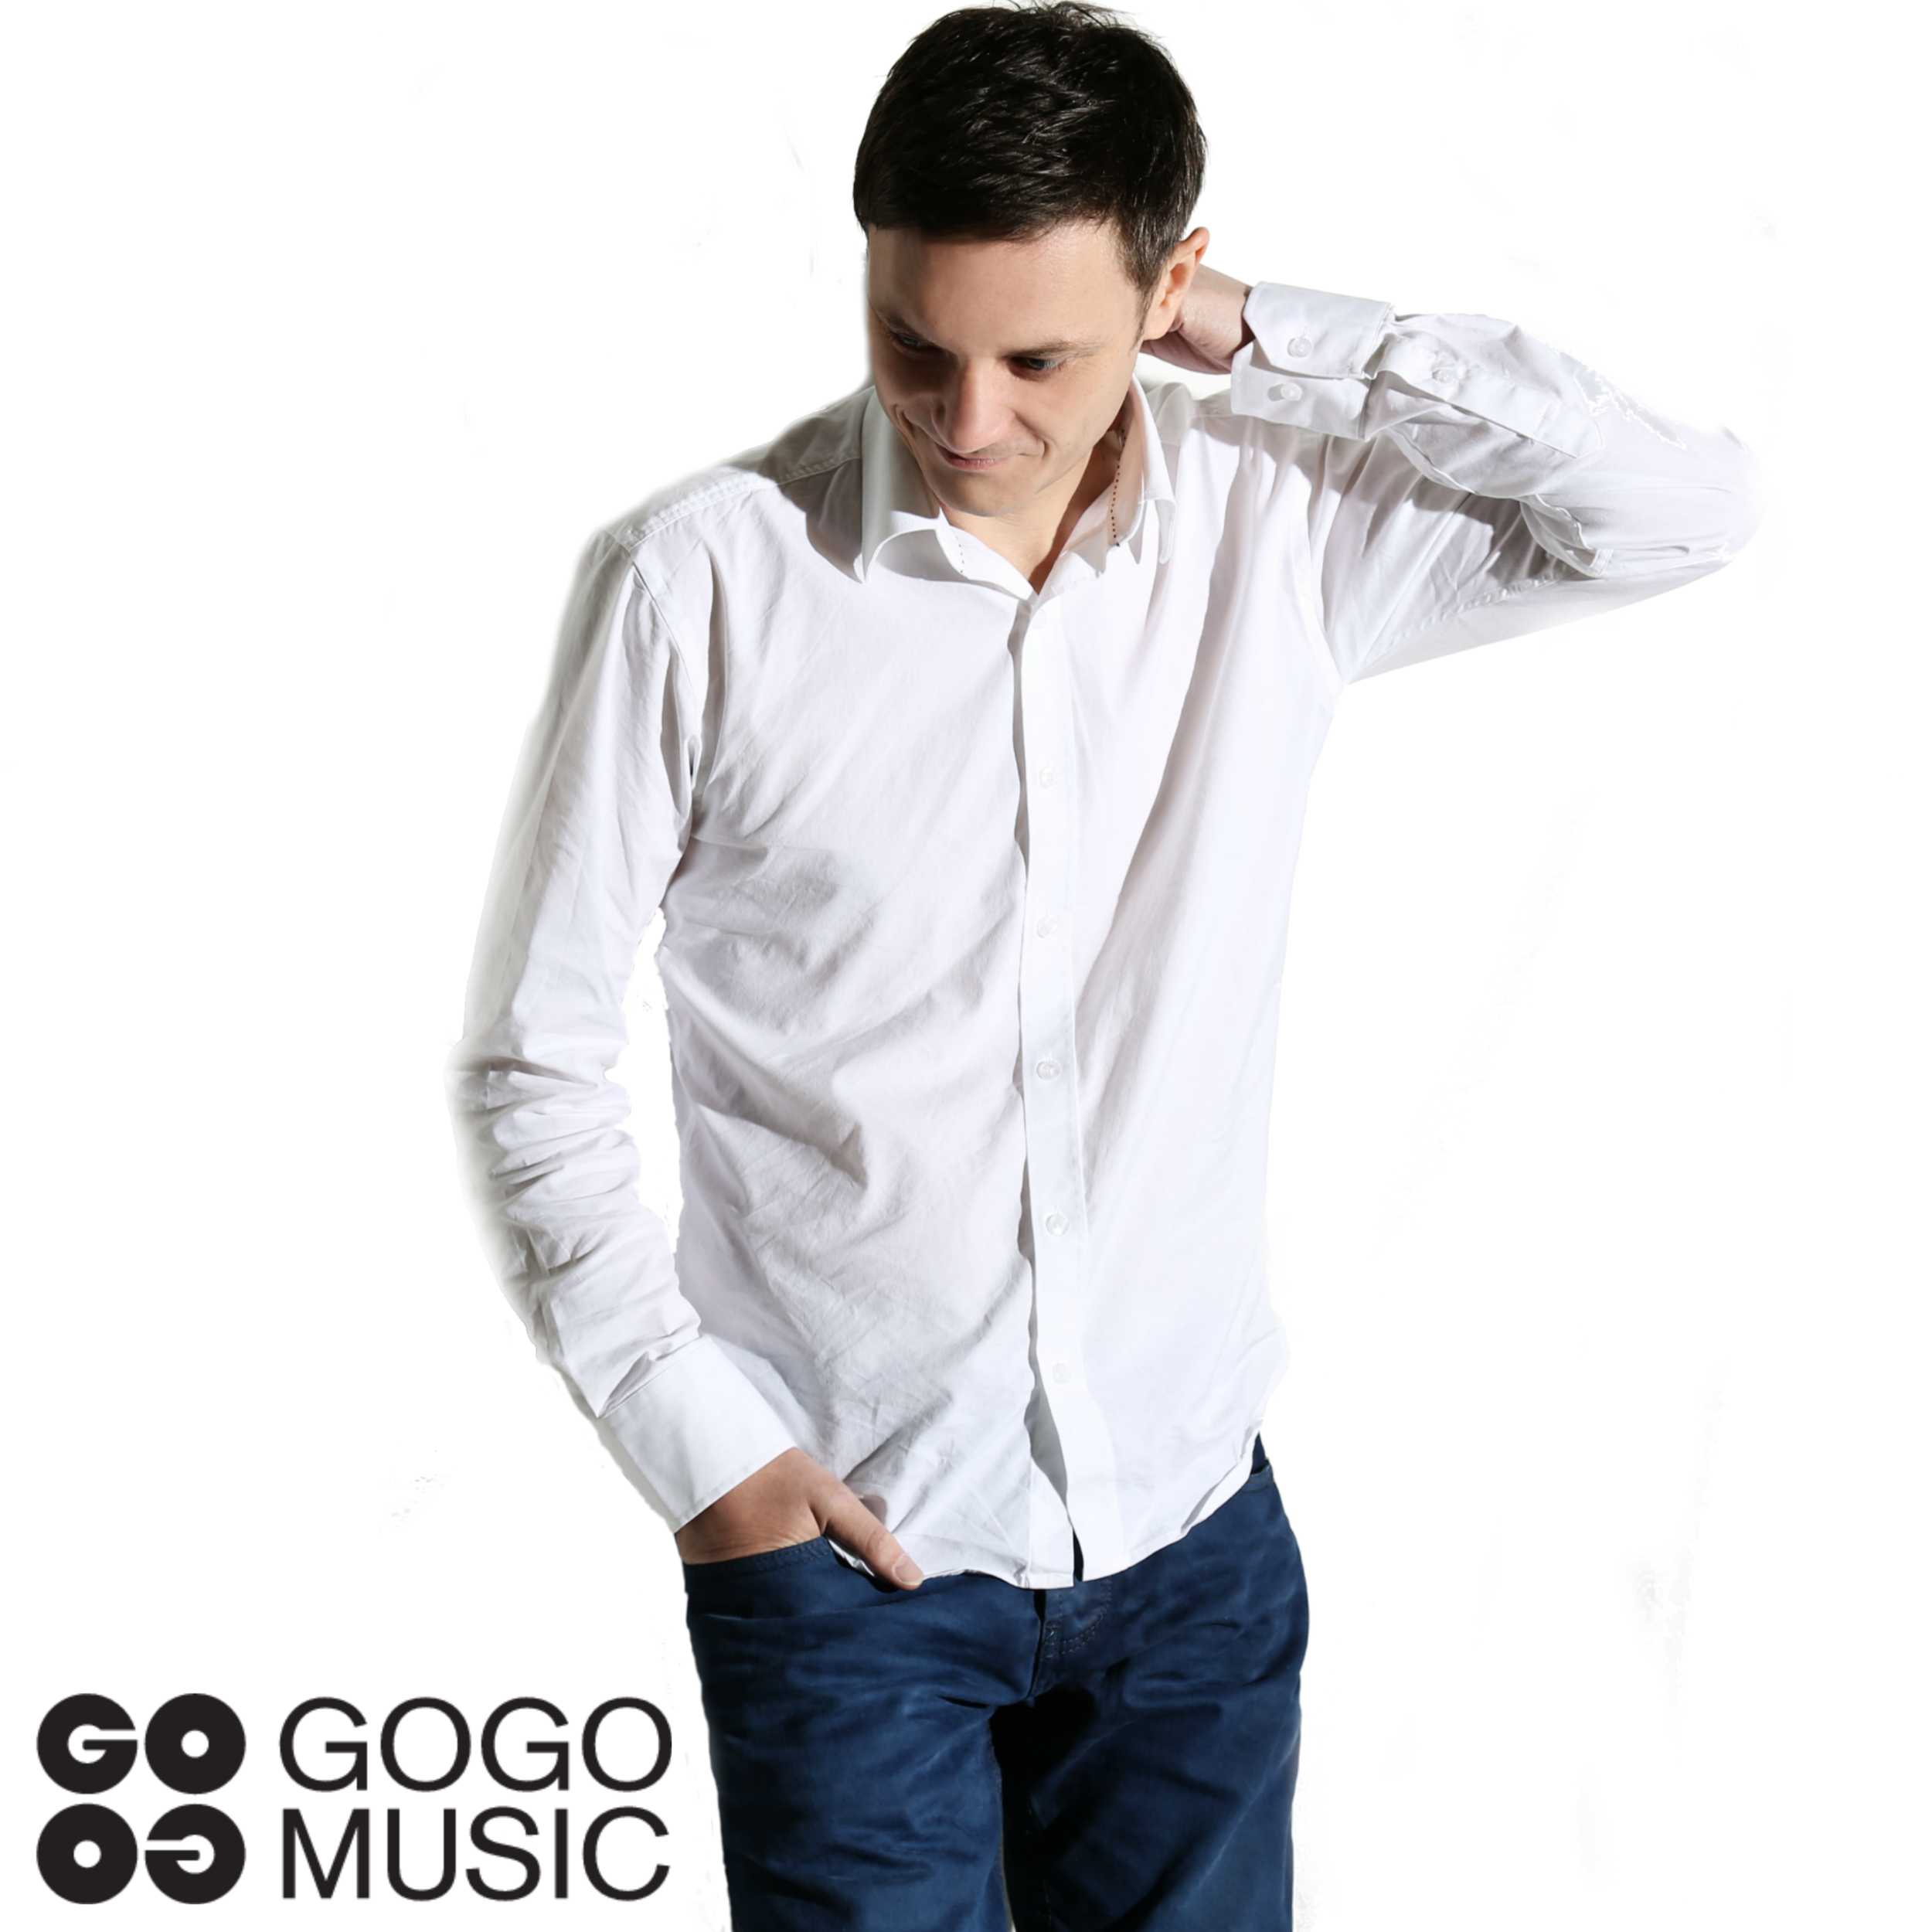 Ralf GUM | GOGO Music - International Producer | DJ | South Africa